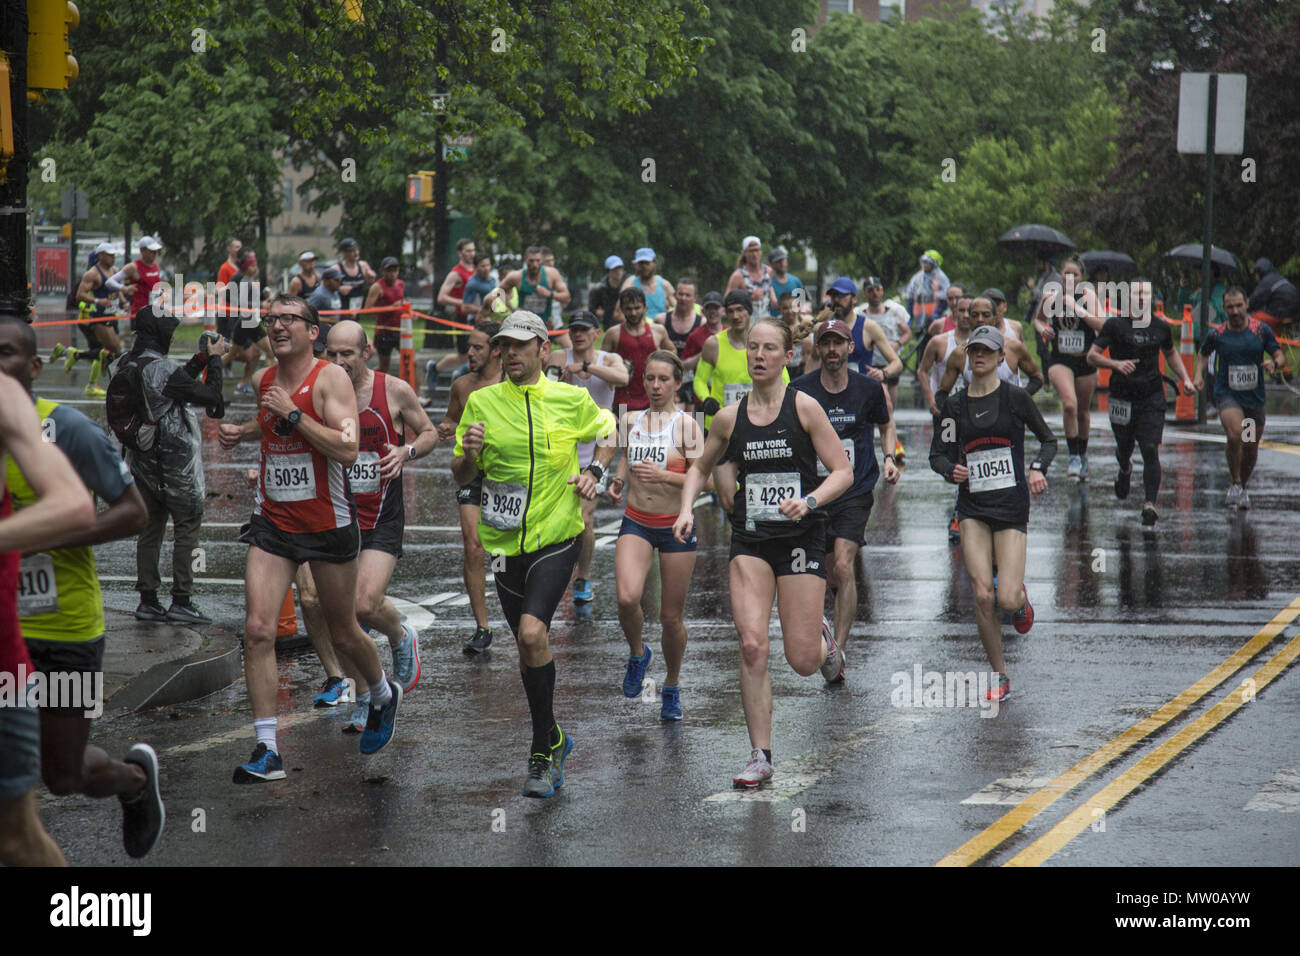 50c567cb57 Runners race through the rain in Prospect Park during the first half of the  Brooklyn Half